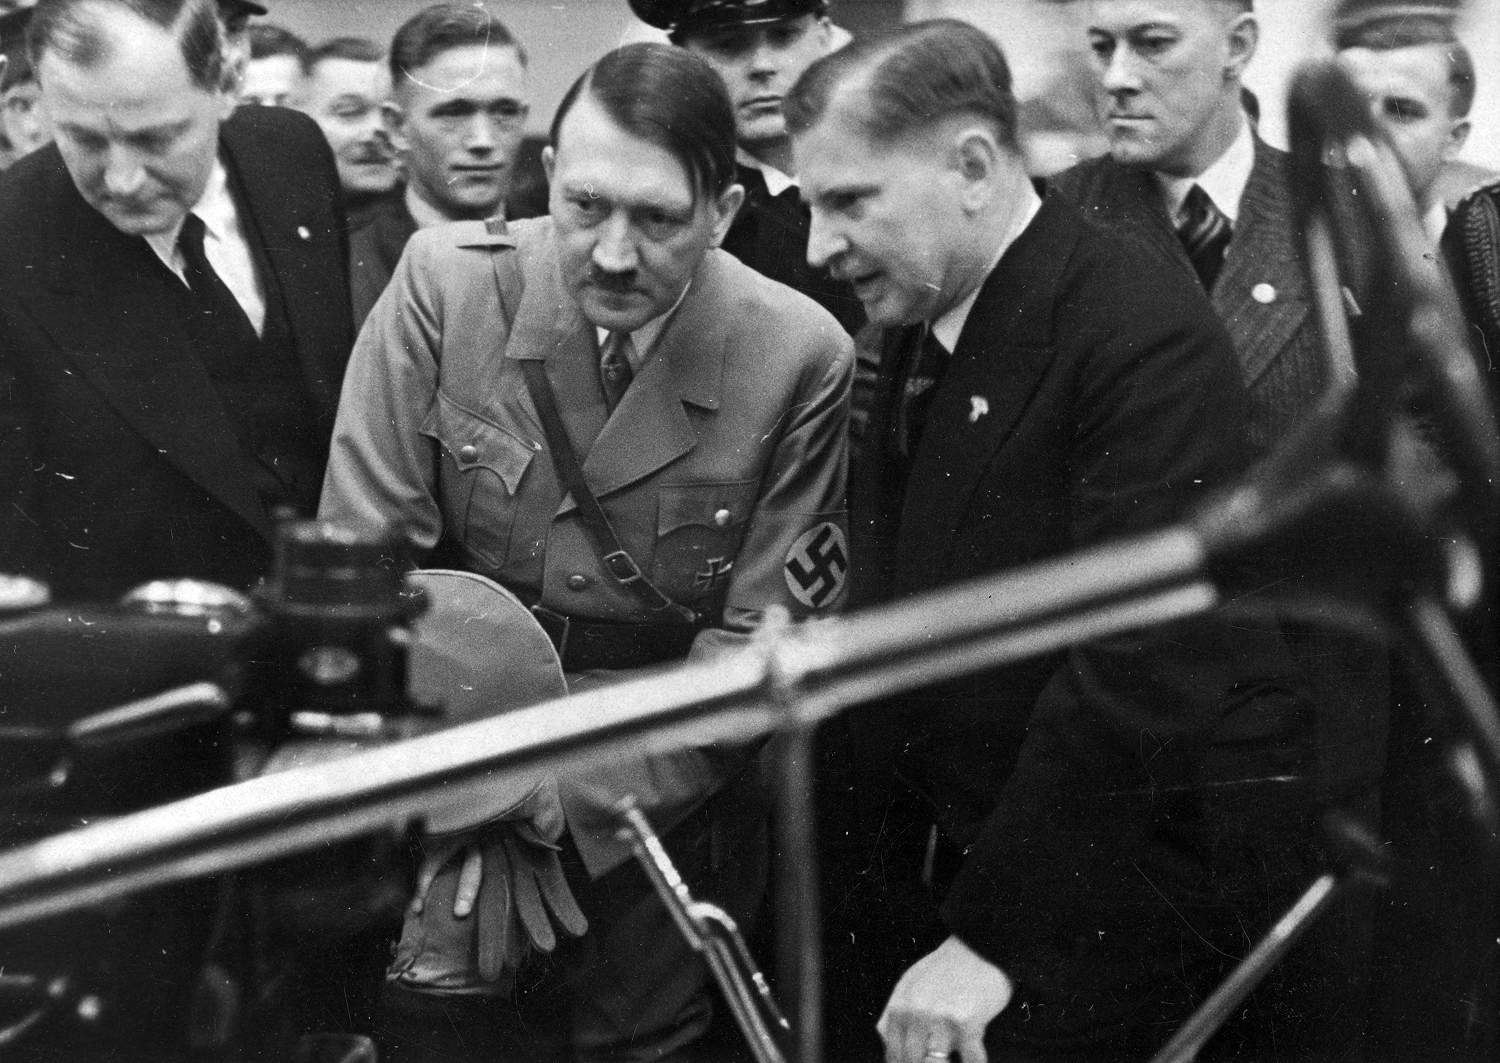 Adolf Hitler at the automobile show